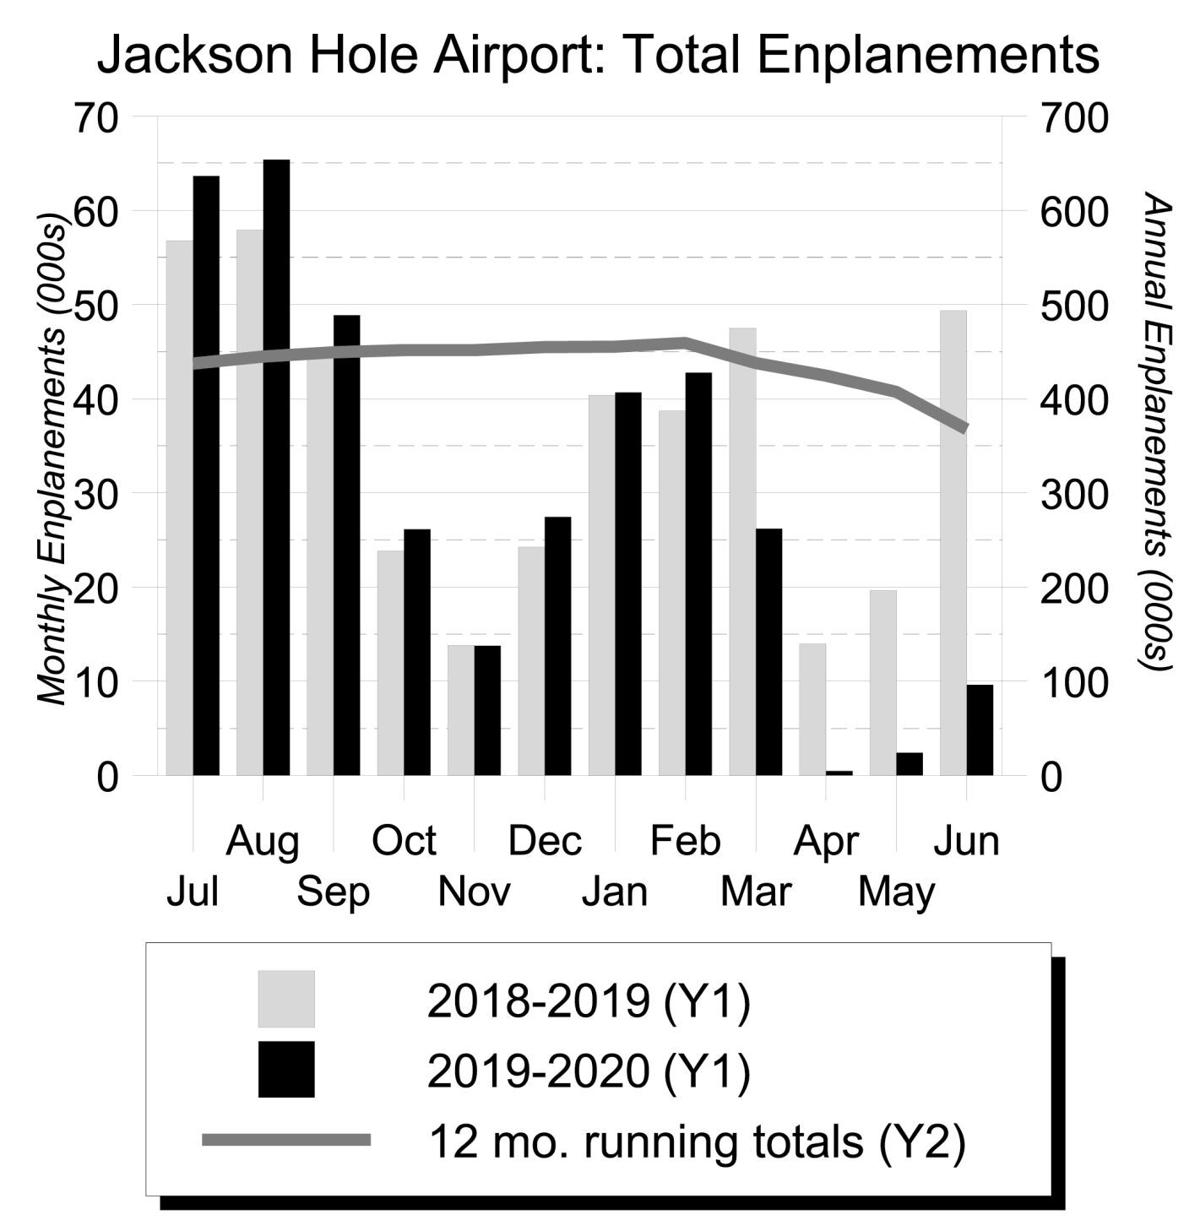 Jackson Hole Airport - Total Enplanements